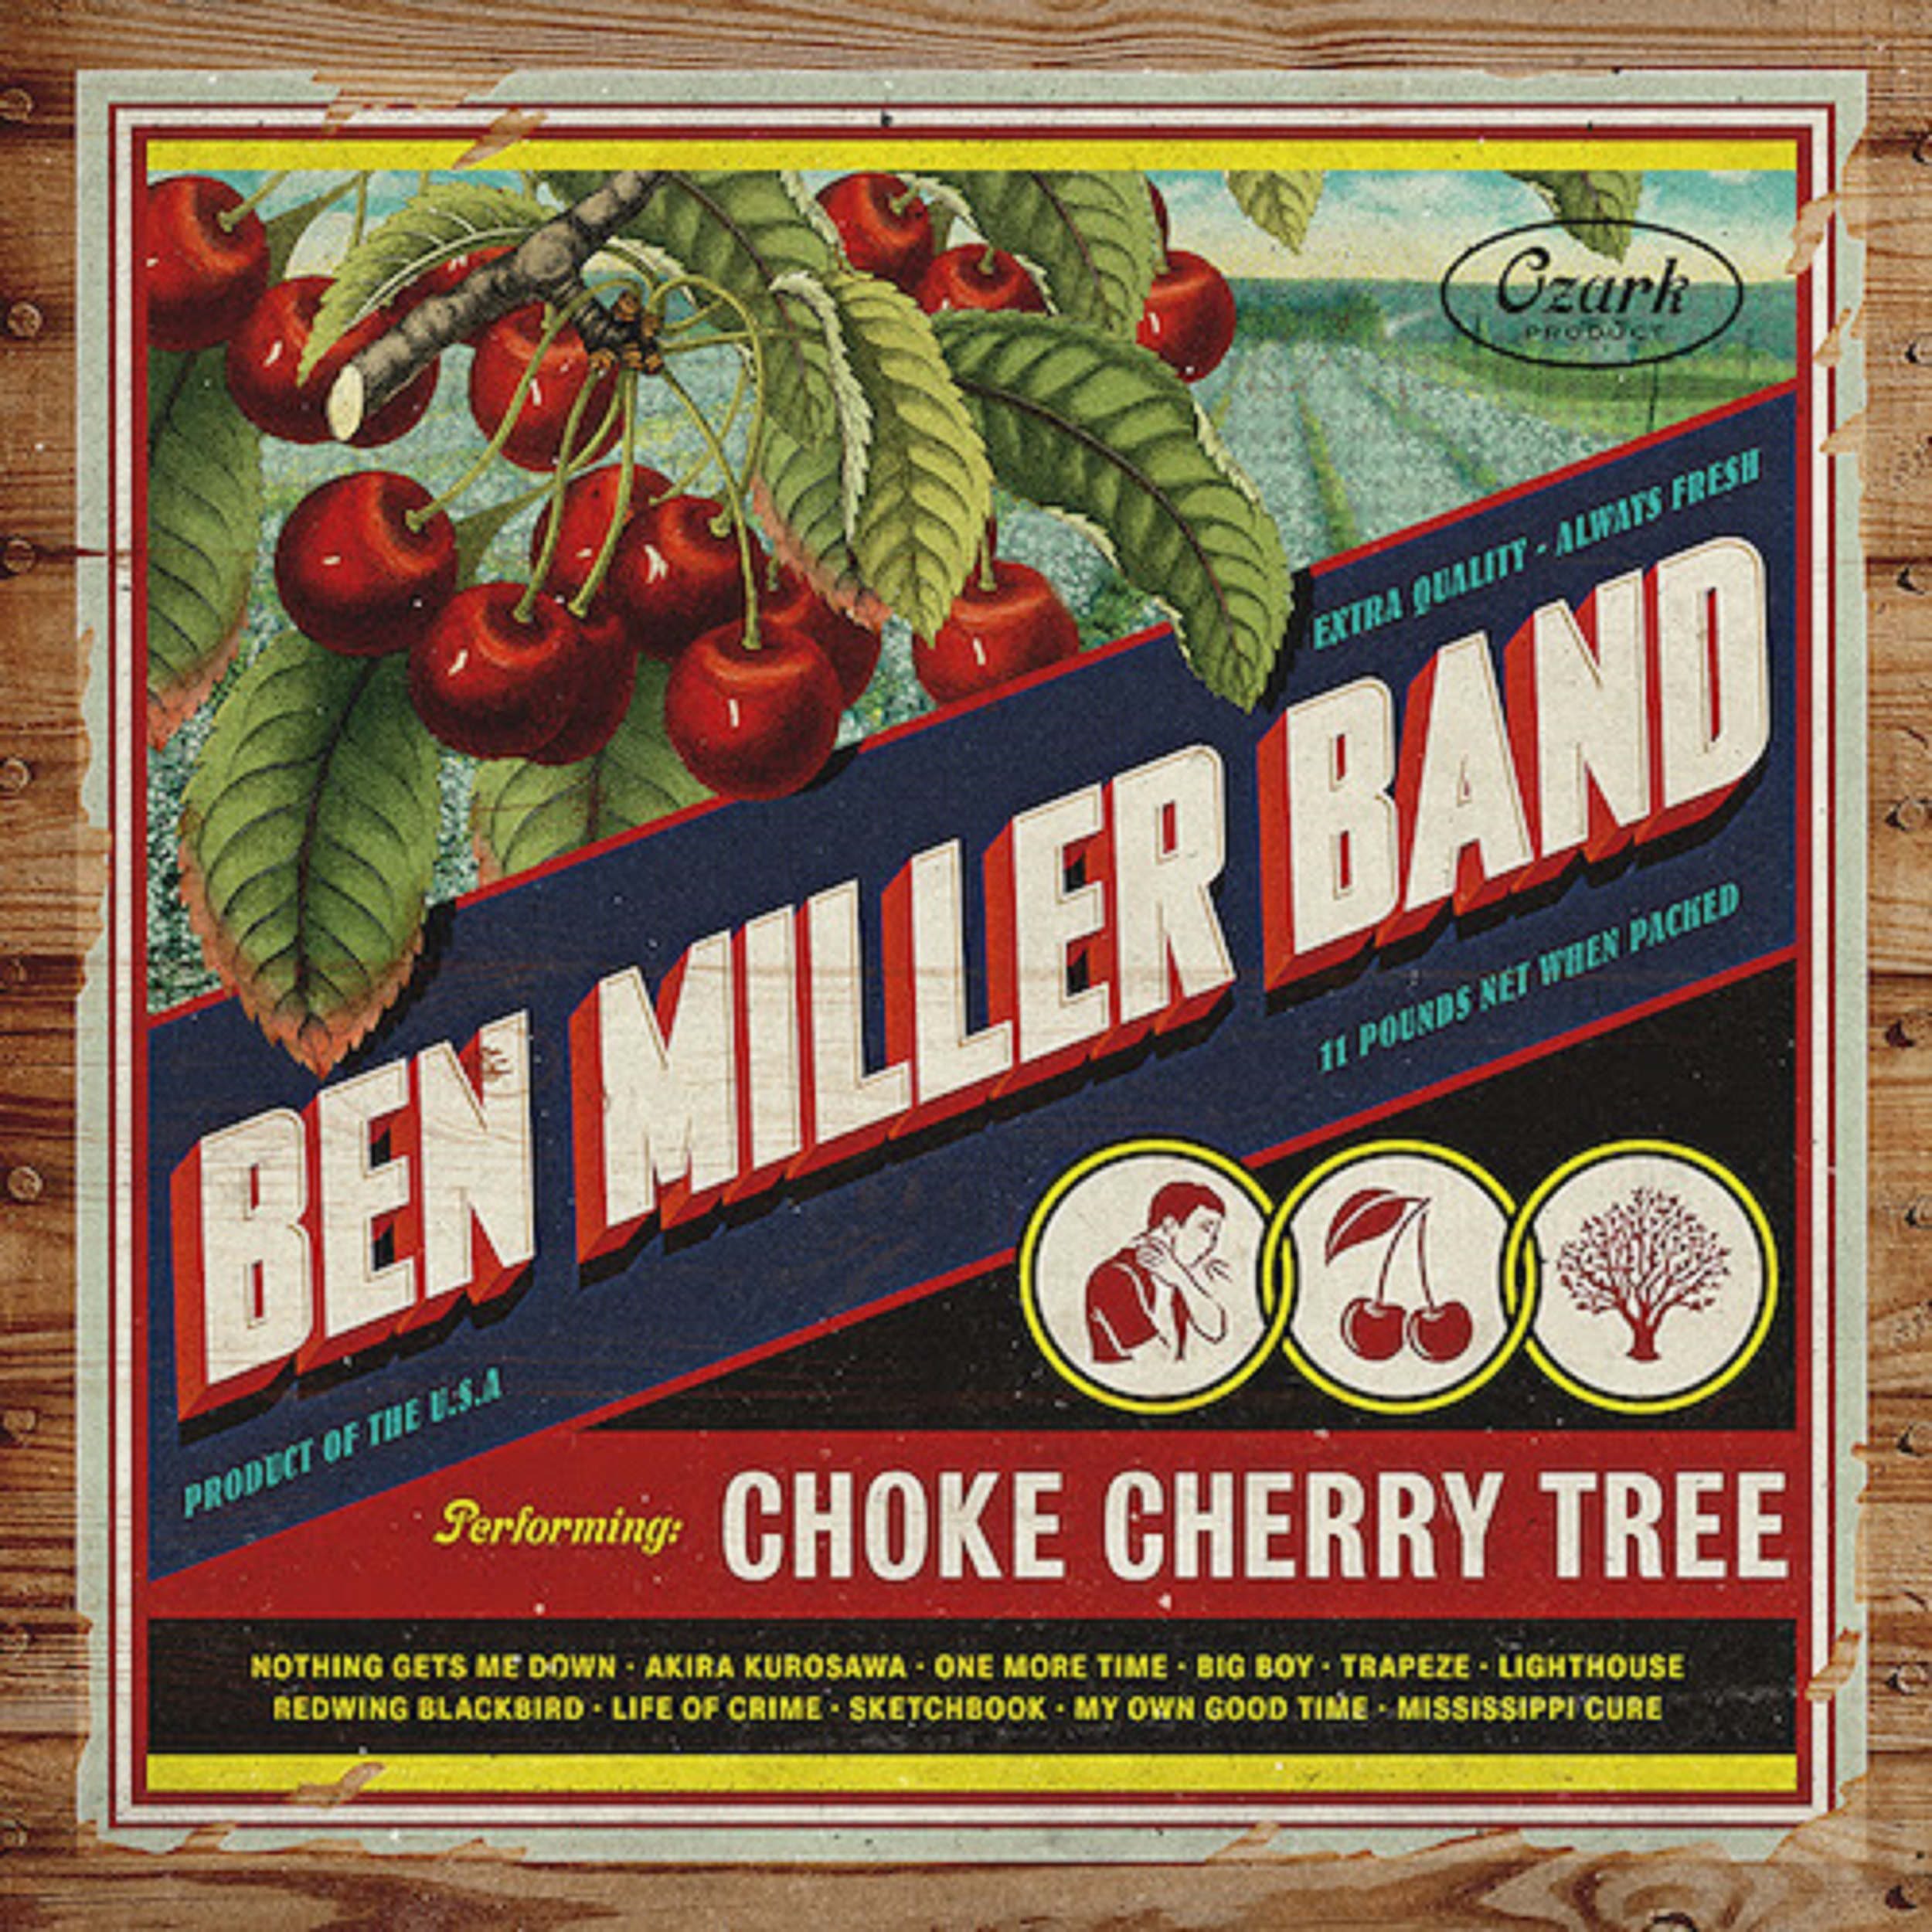 Ben Miller Band Returns With 'Choke Cherry Tree'